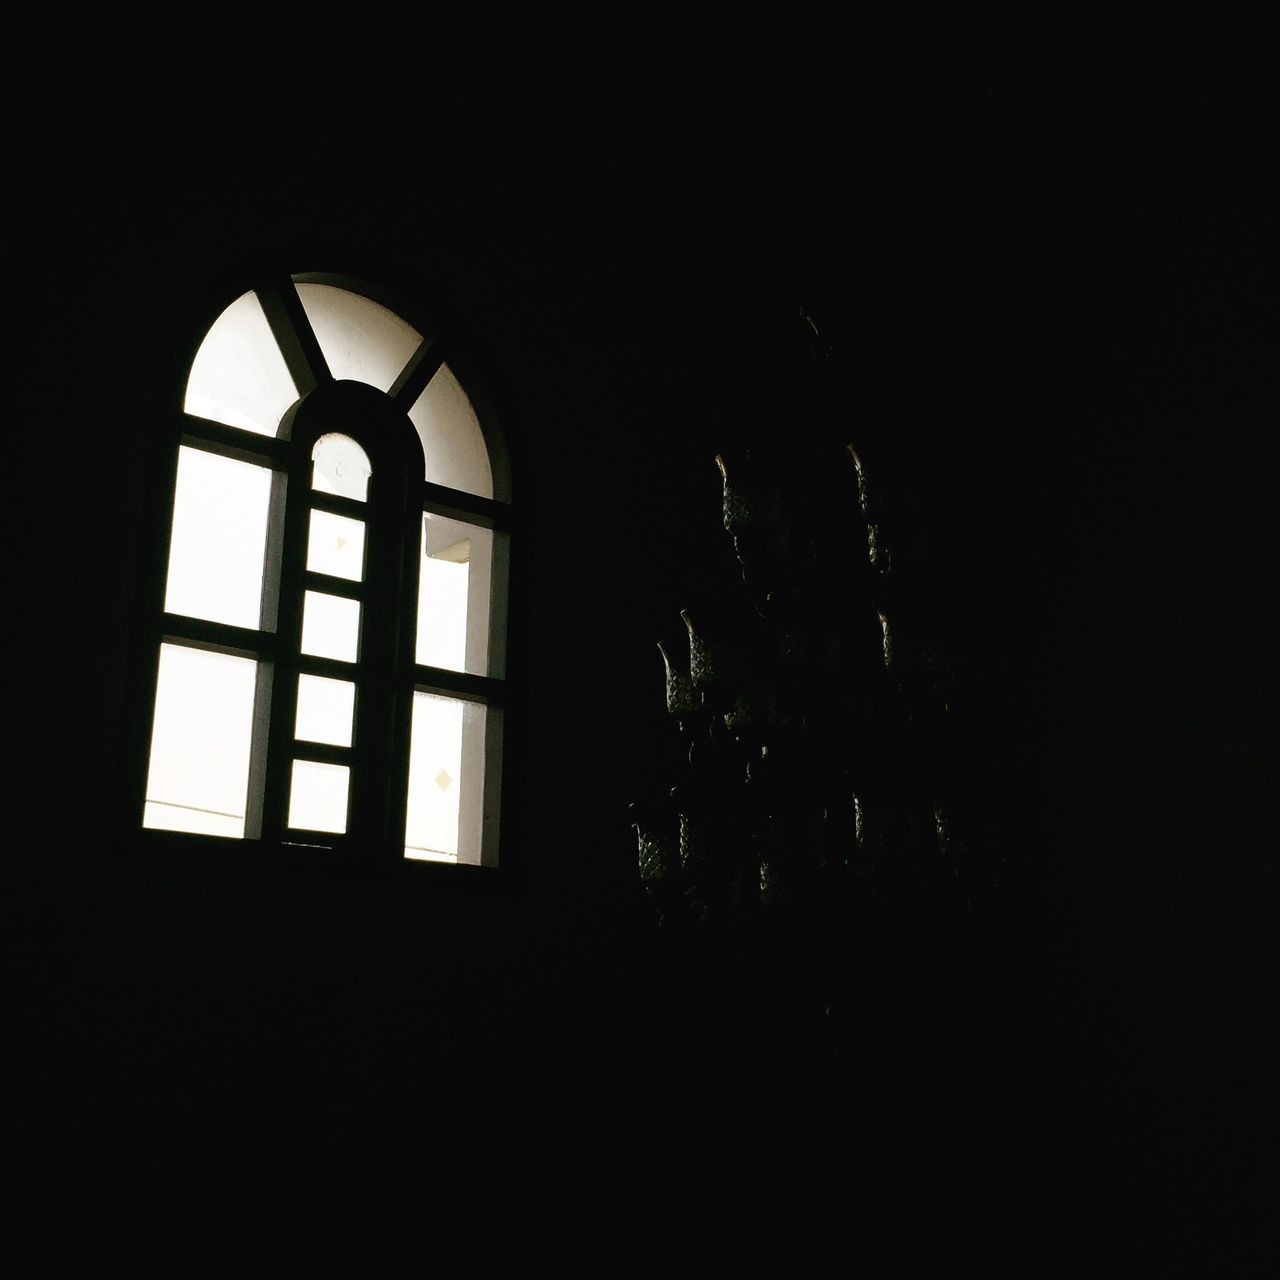 the woRLd's bright... but its darK wiThiN Window No People Architecture First Eyeem Photo Viral Day Darkness And Light Visionary Shandilear Antique Bestoftheday